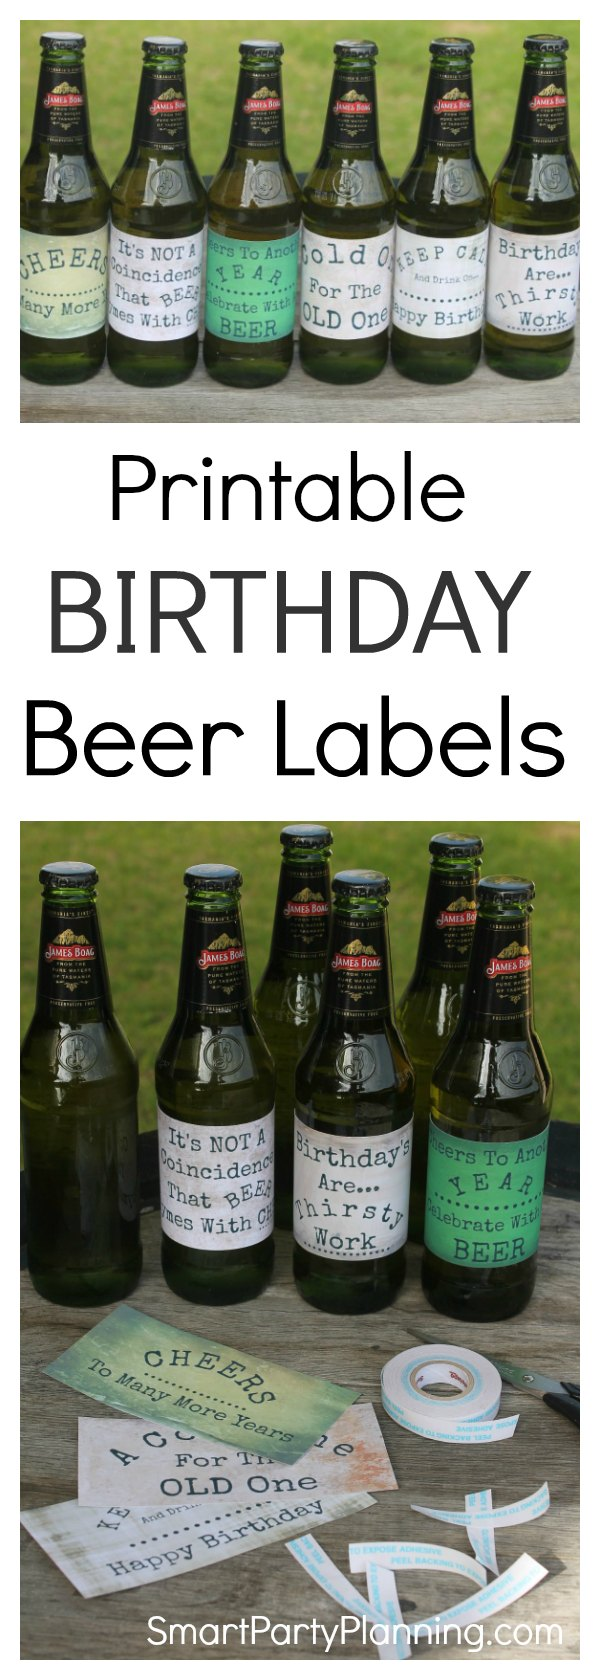 Grab an awesome set of 6 printable birthday beer labels that guys will absolutely love. Whether it's for dad's birthday, your husband, partner or brother, these beer labels are going to be a present that he will want to receive. Fun DIY gifts always make the best gifts, and this one is super easy to make. They would even be great for use at parties too.